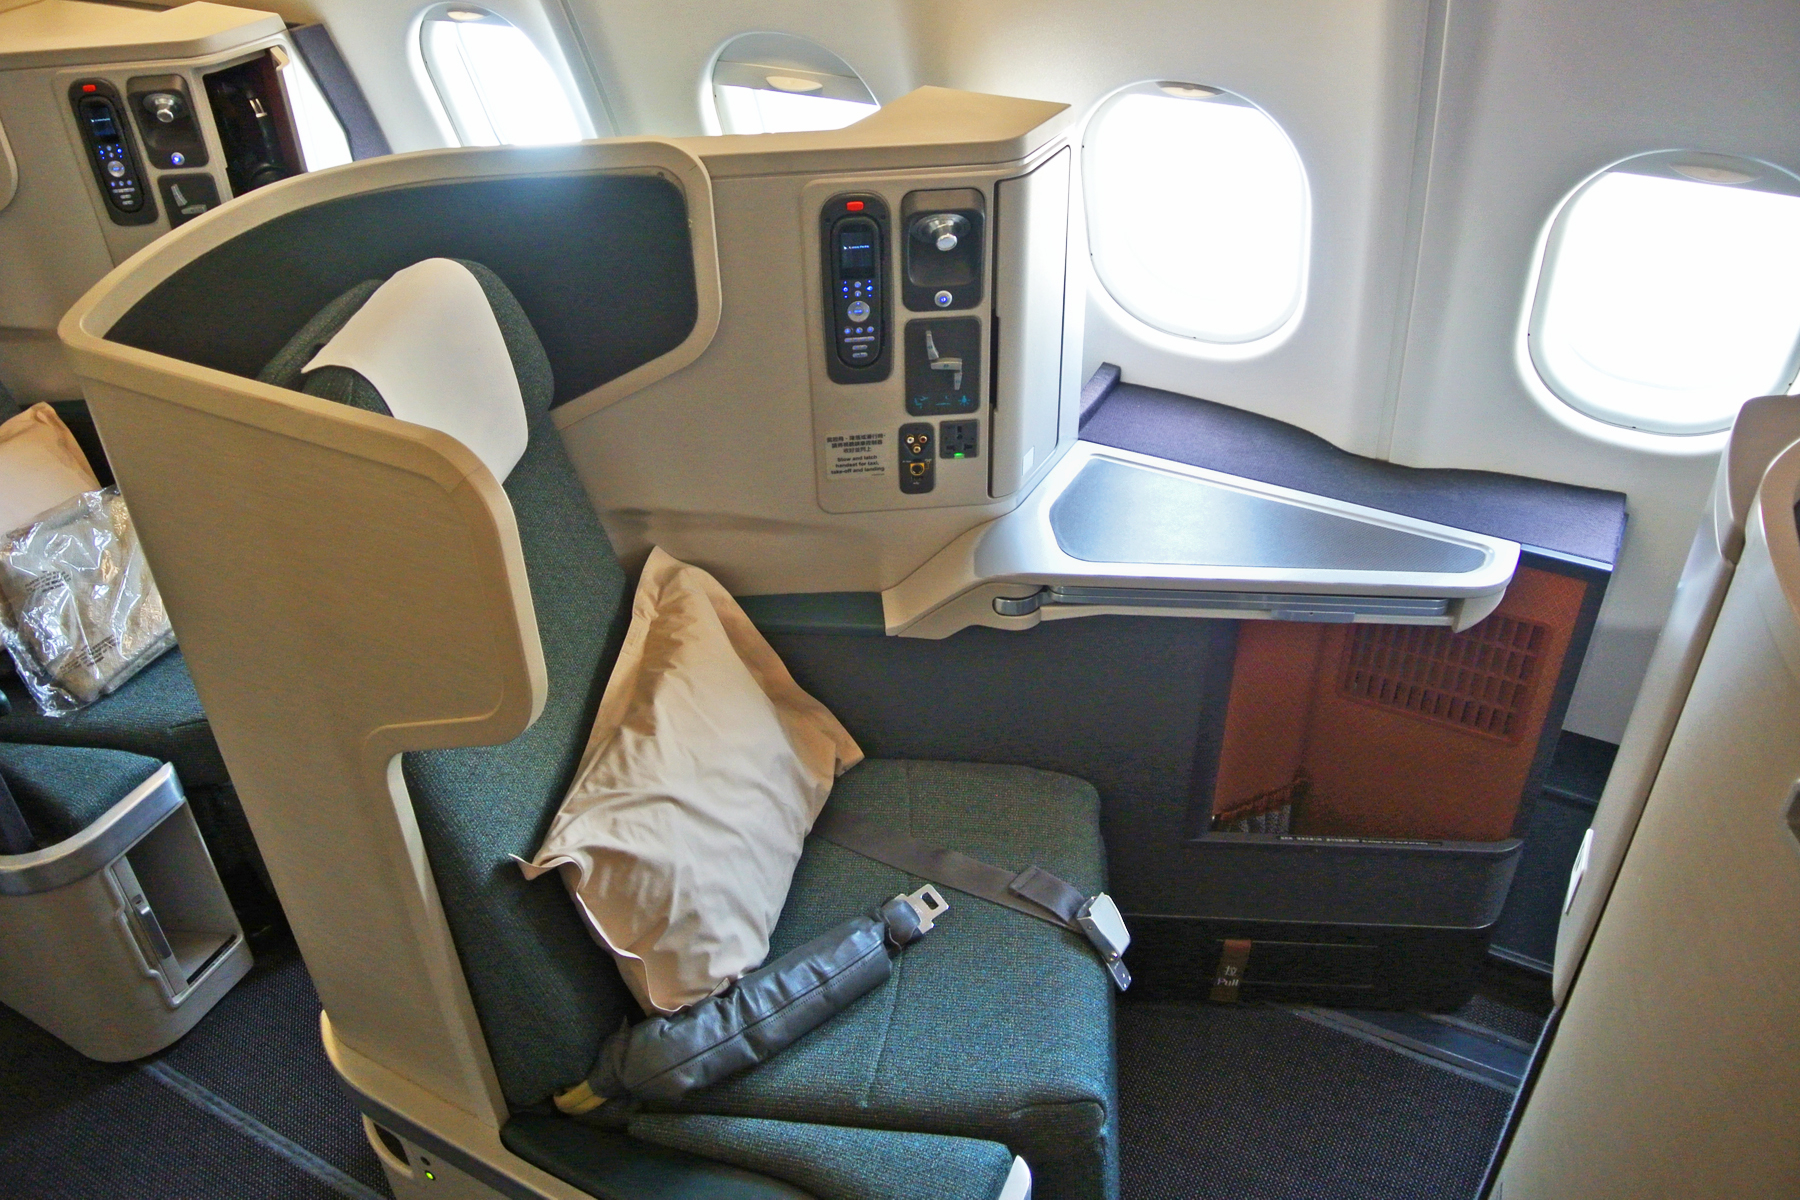 cathay pacific new business class interior classes Cathay Pacific A330 Seat